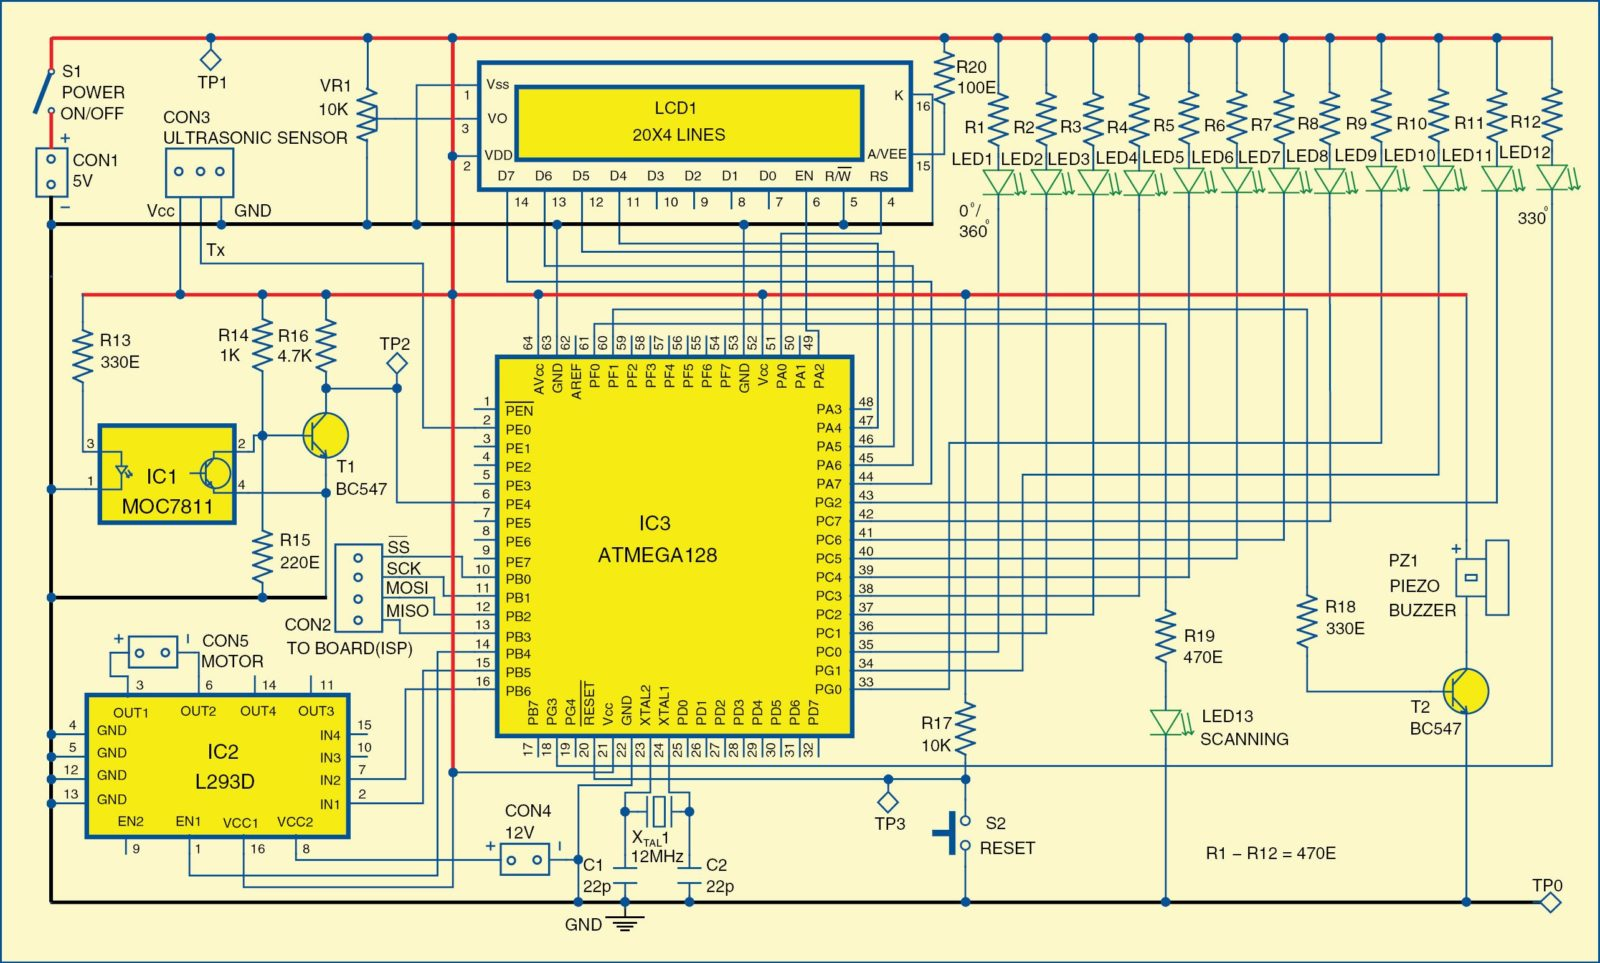 Fig. 2: Schematic diagram of the ultrasonic radar model using microcontroller ATmega128